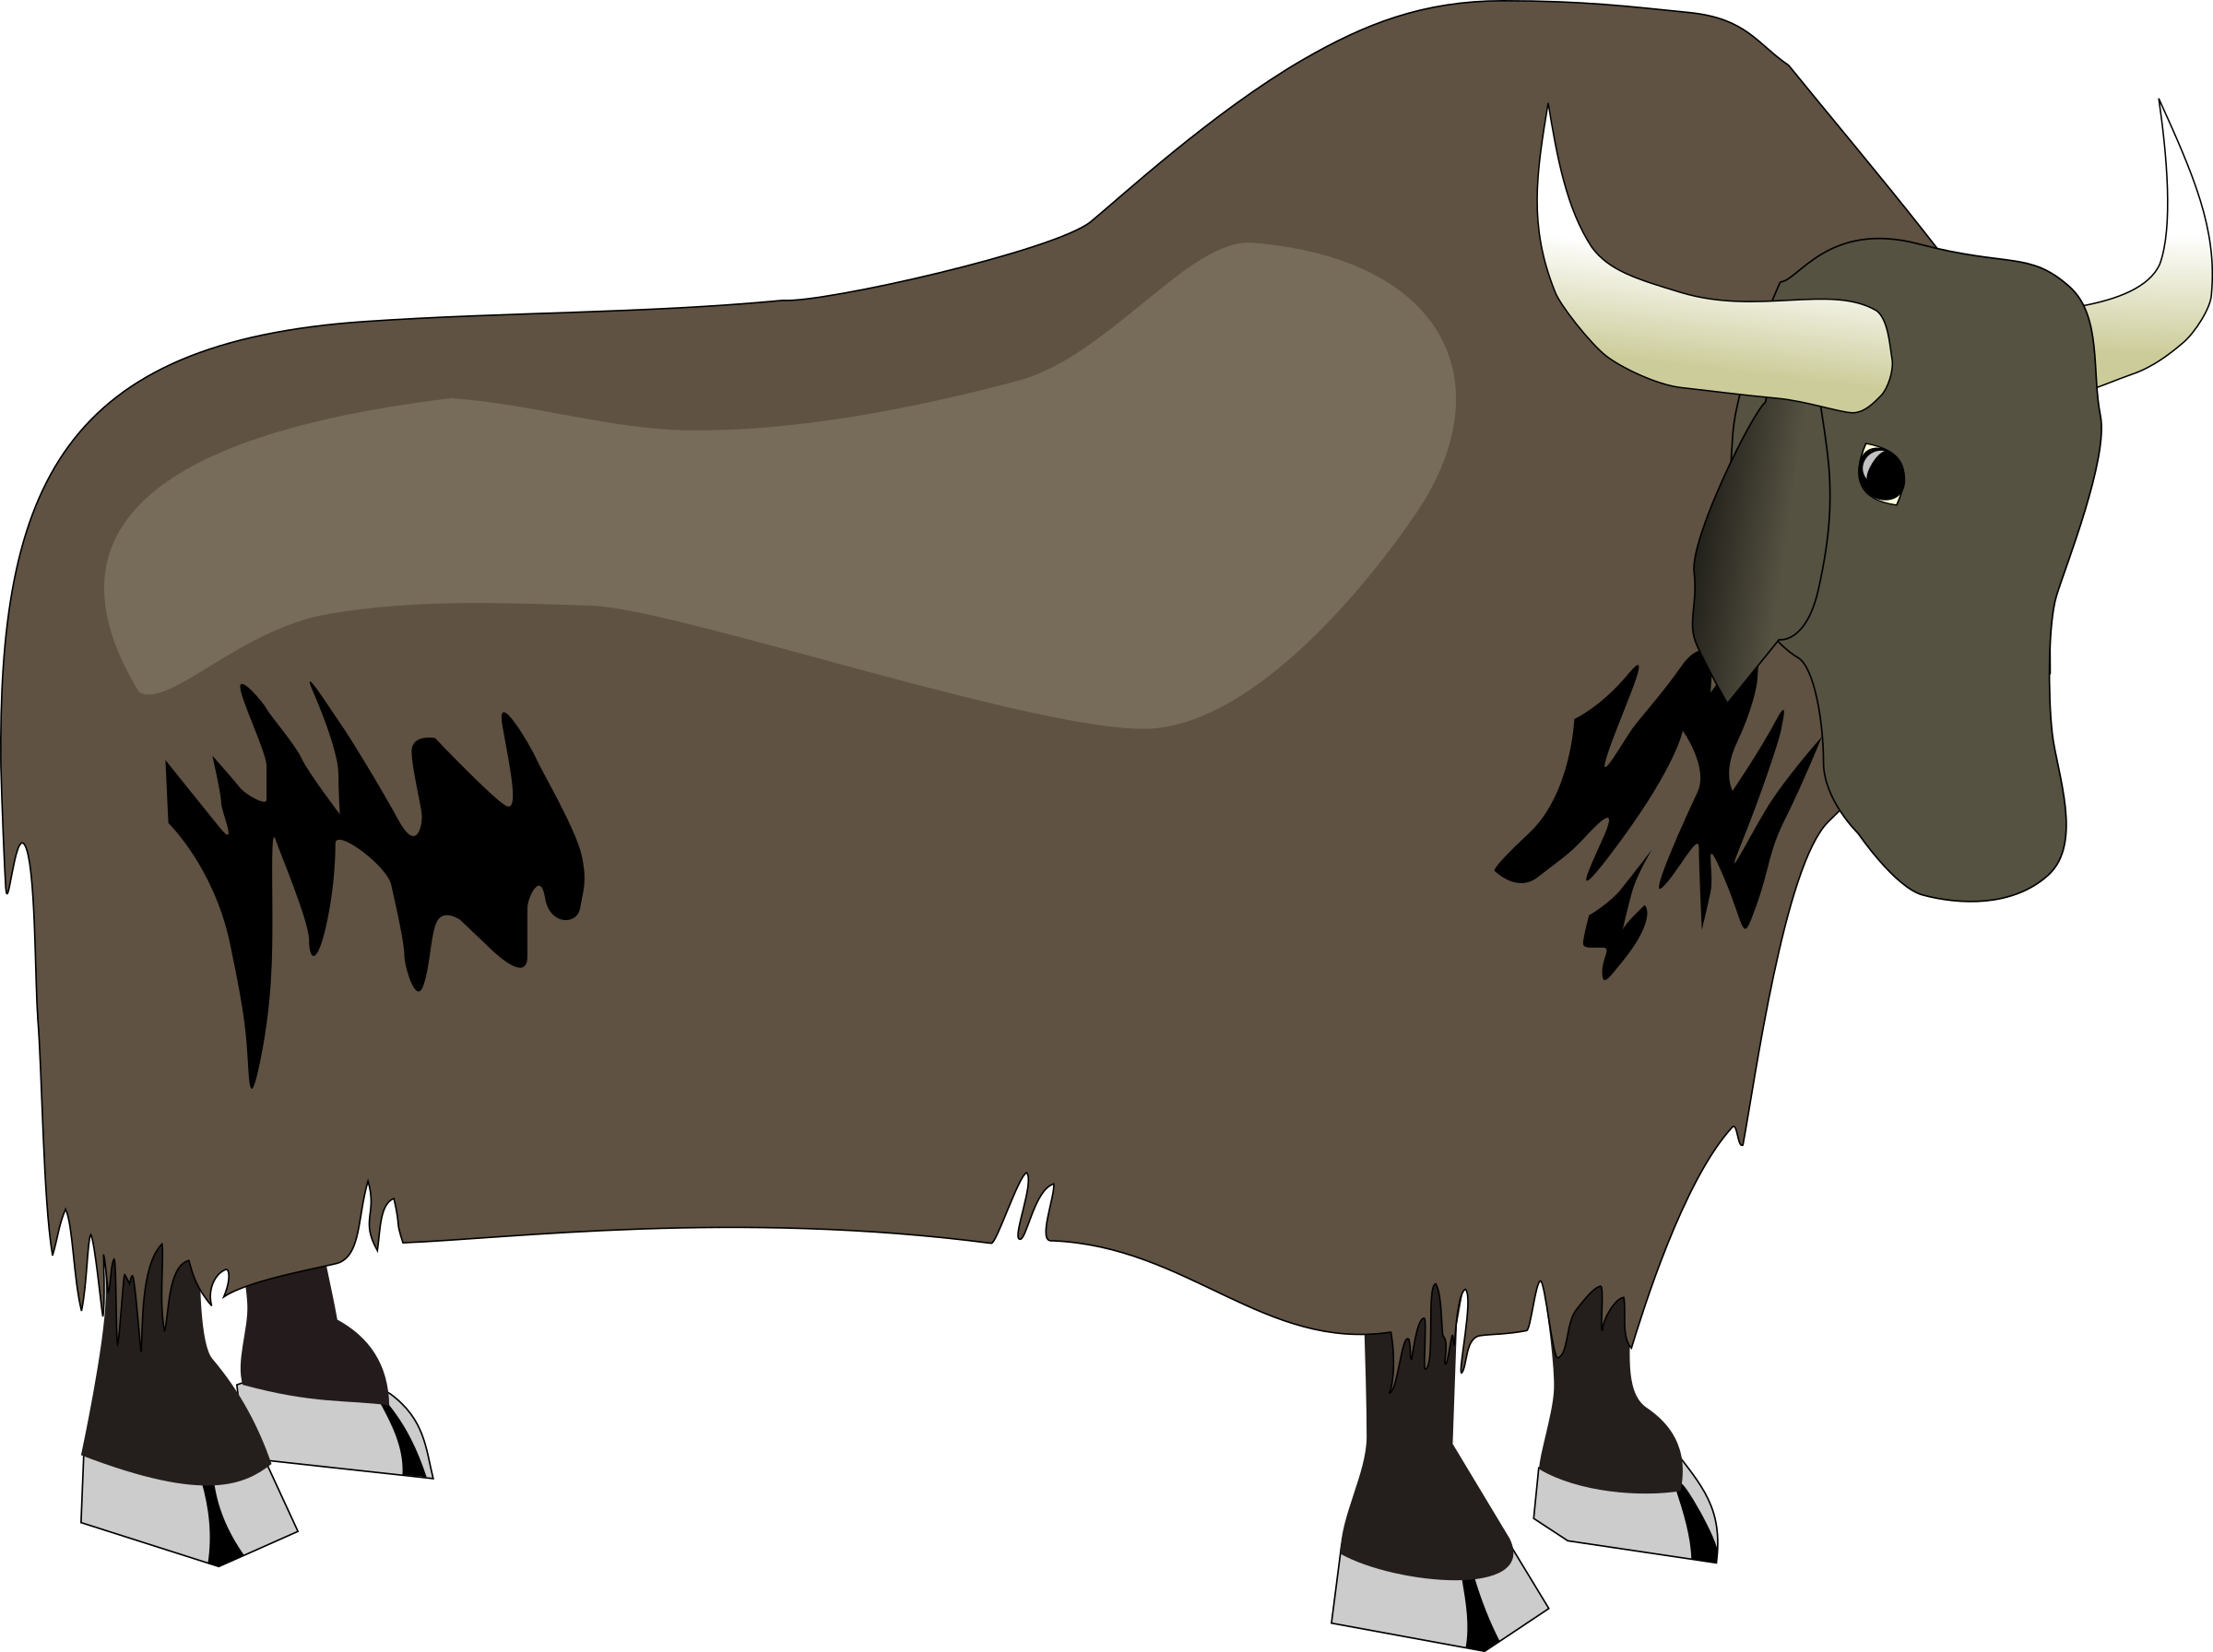 Ox vector drawing. Clipart yak big image